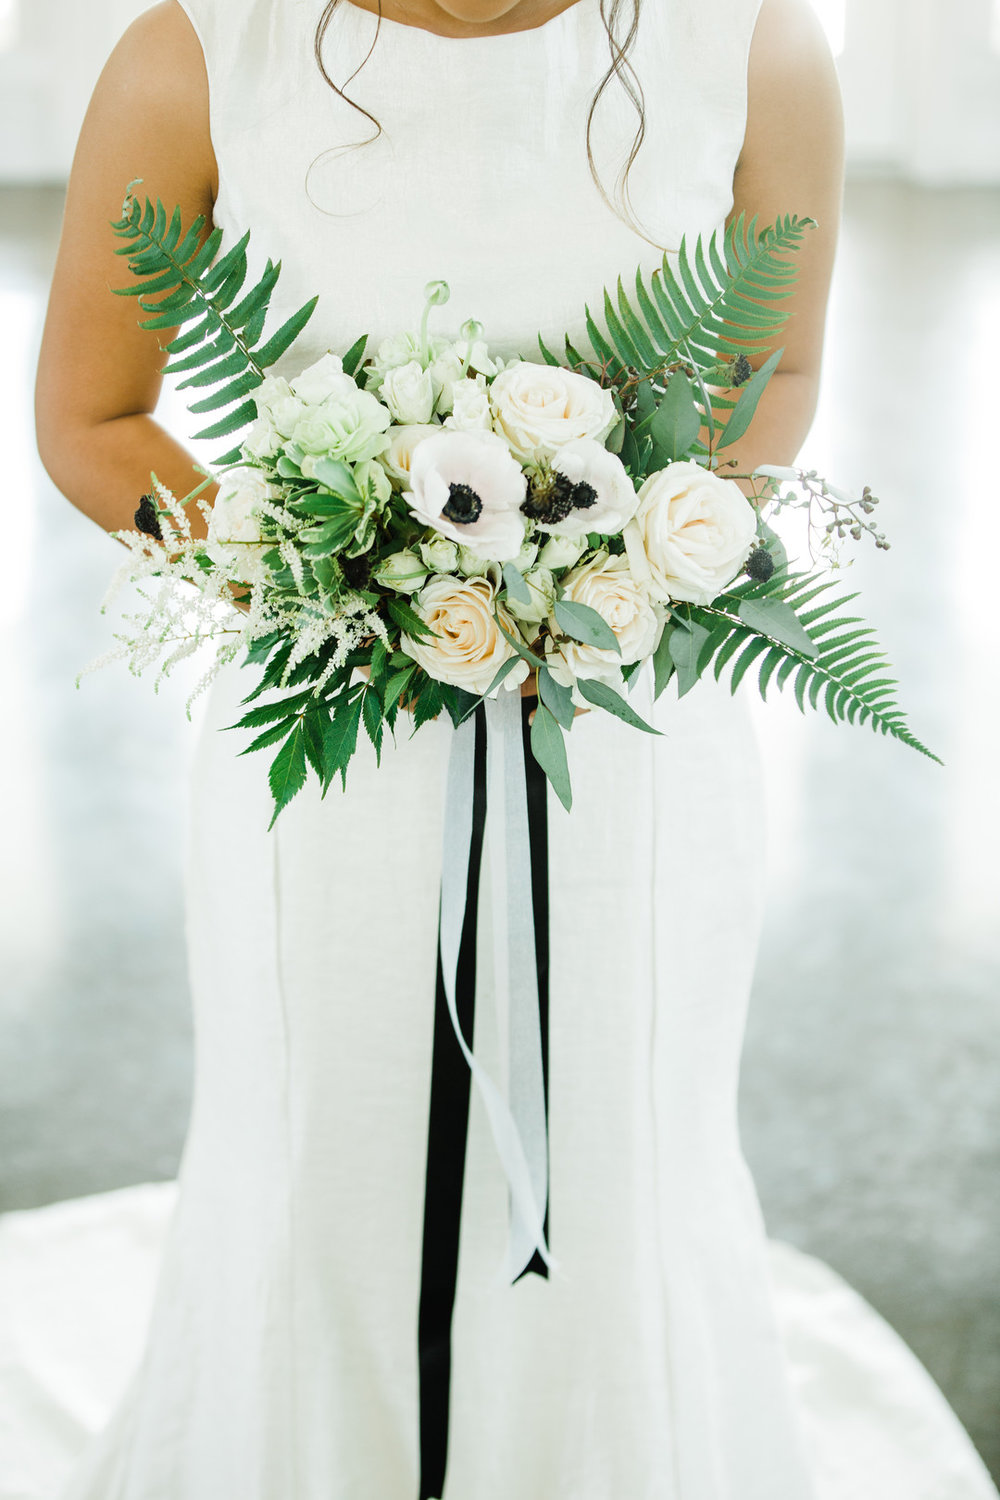 MoniLynnImages_WeddingInspoBridalWildFlowerWeddingVenueMonilynnimages34_big.jpg